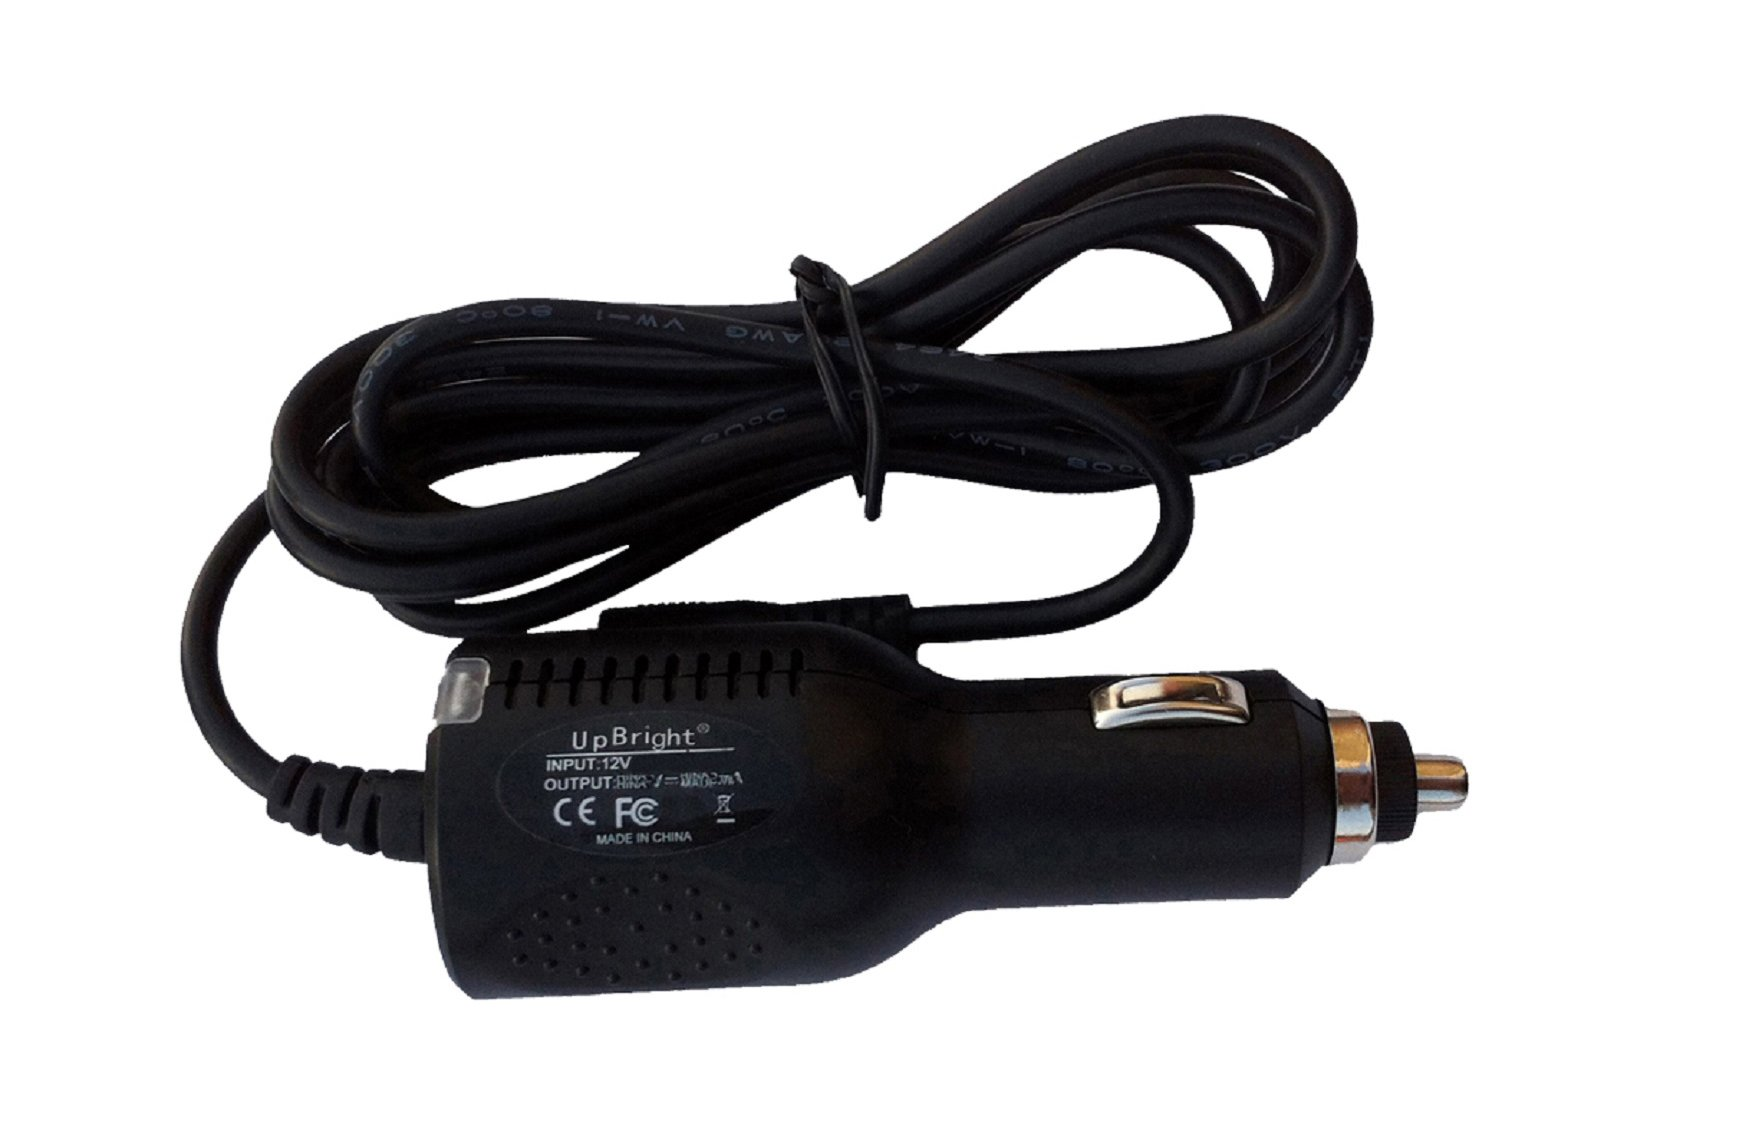 UpBright New Car DC Adapter For TDS Trimble Ranger 300 X 500 X 300X 500X Spectra TSC2 M890-0001 SSF35150 GPS Computer Data Collector McElroy DataLogger 4 DL13601 5 DL16301 JUNO 3B Auto Power Supply